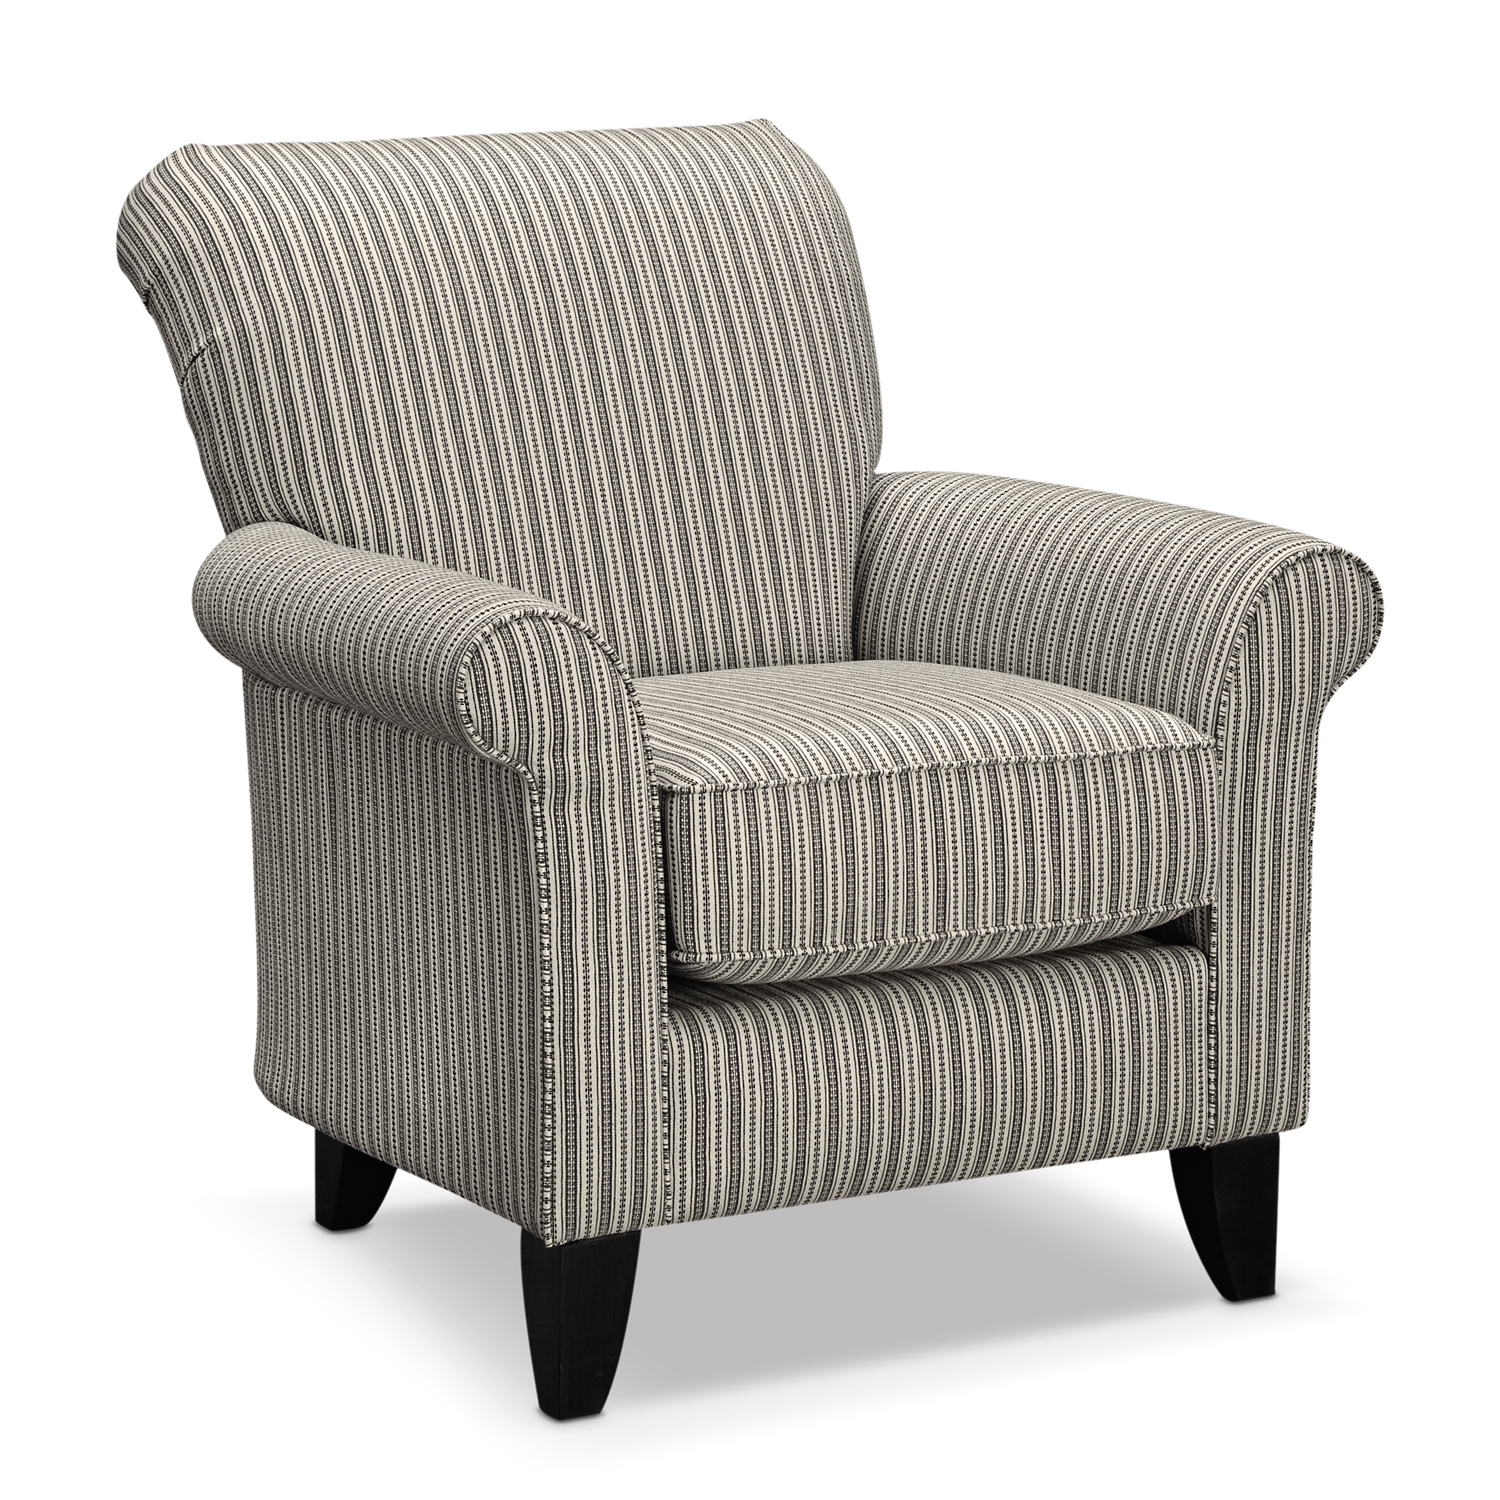 Cozy Accent Chair for Home Furniture Ideas: Brilliant Accent Chair For Home Furniture Ideas With Accent Chairs With Arms And Accent Chairs For Living Room